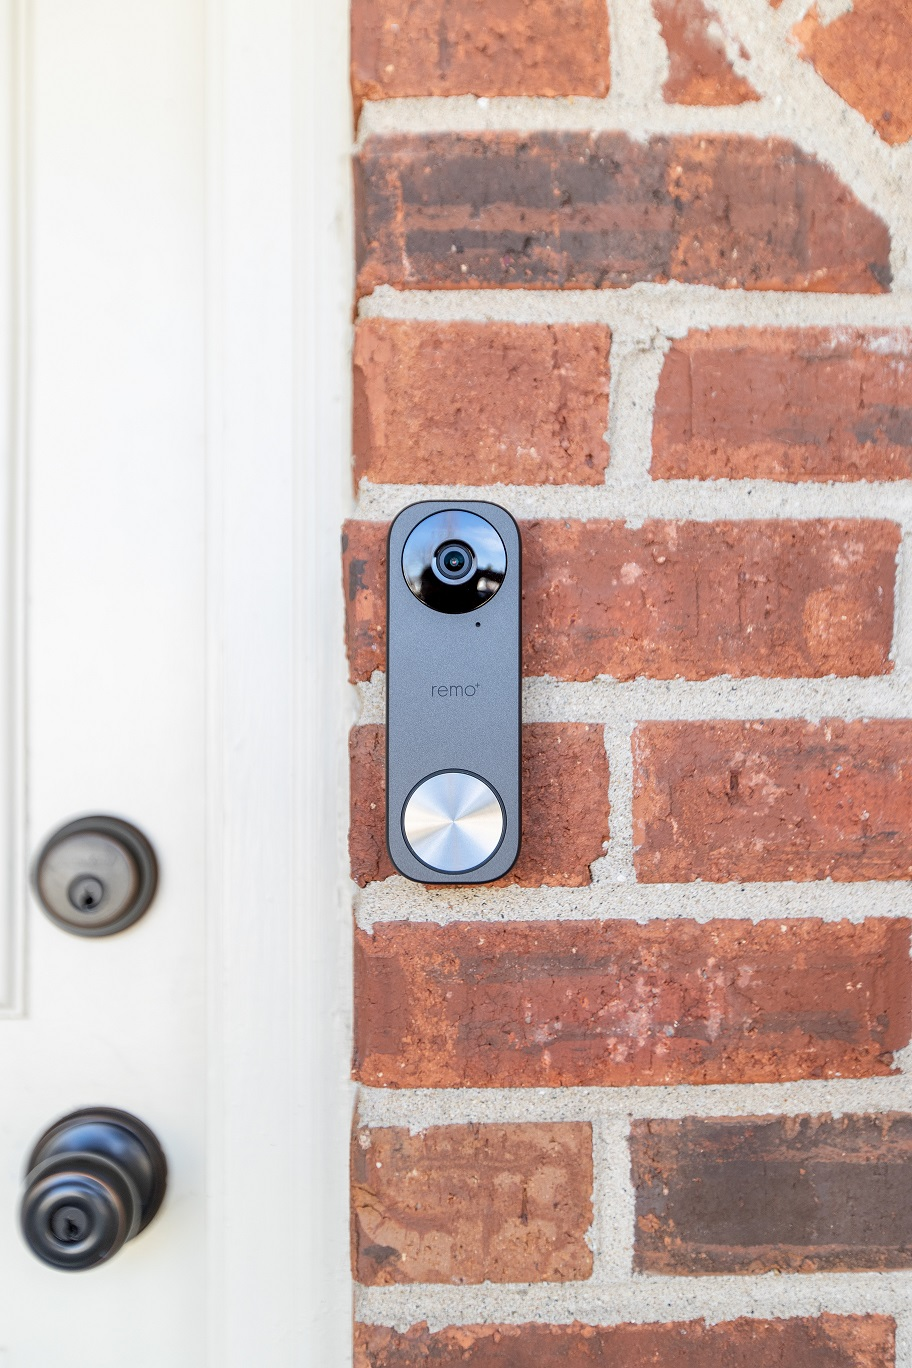 Photo of a smart doorbell with video camera